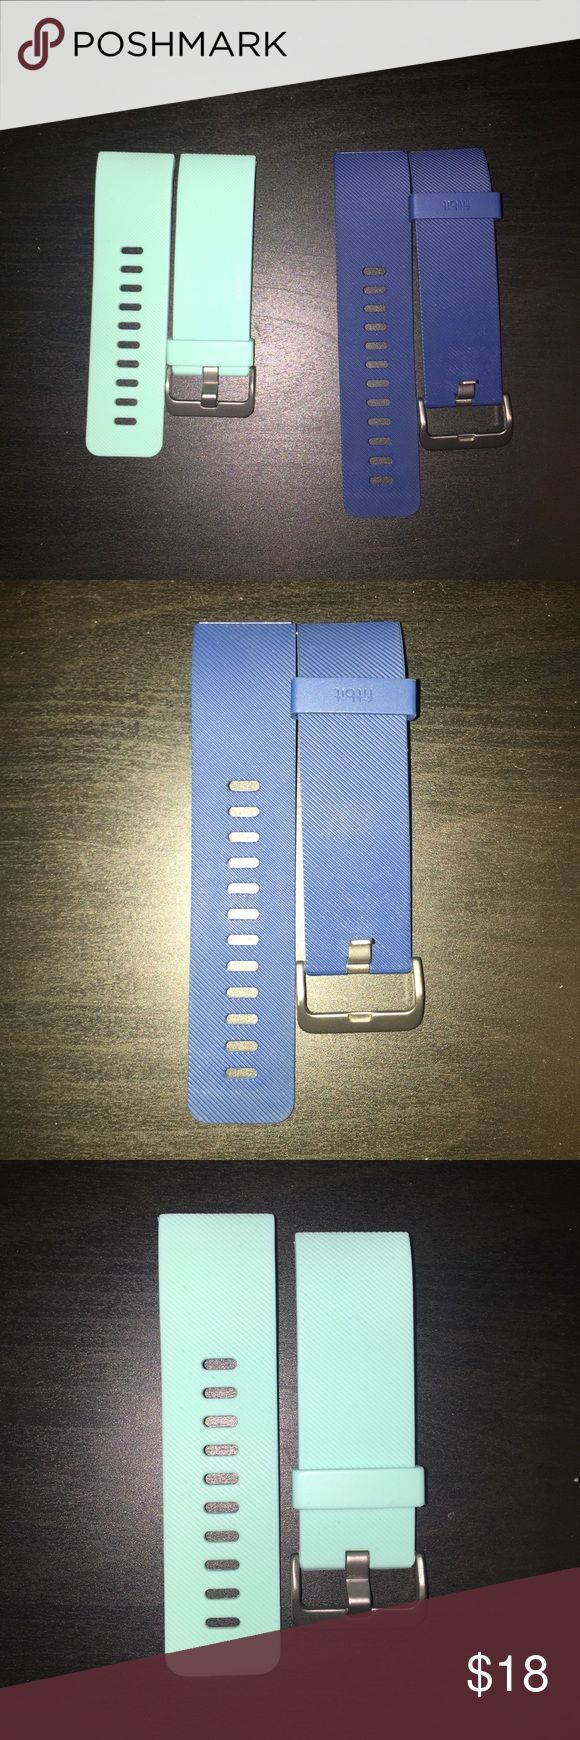 Fitbit bands Colors: Turquoise (size S) and navy blue (size L) fitbit Accessories Watches